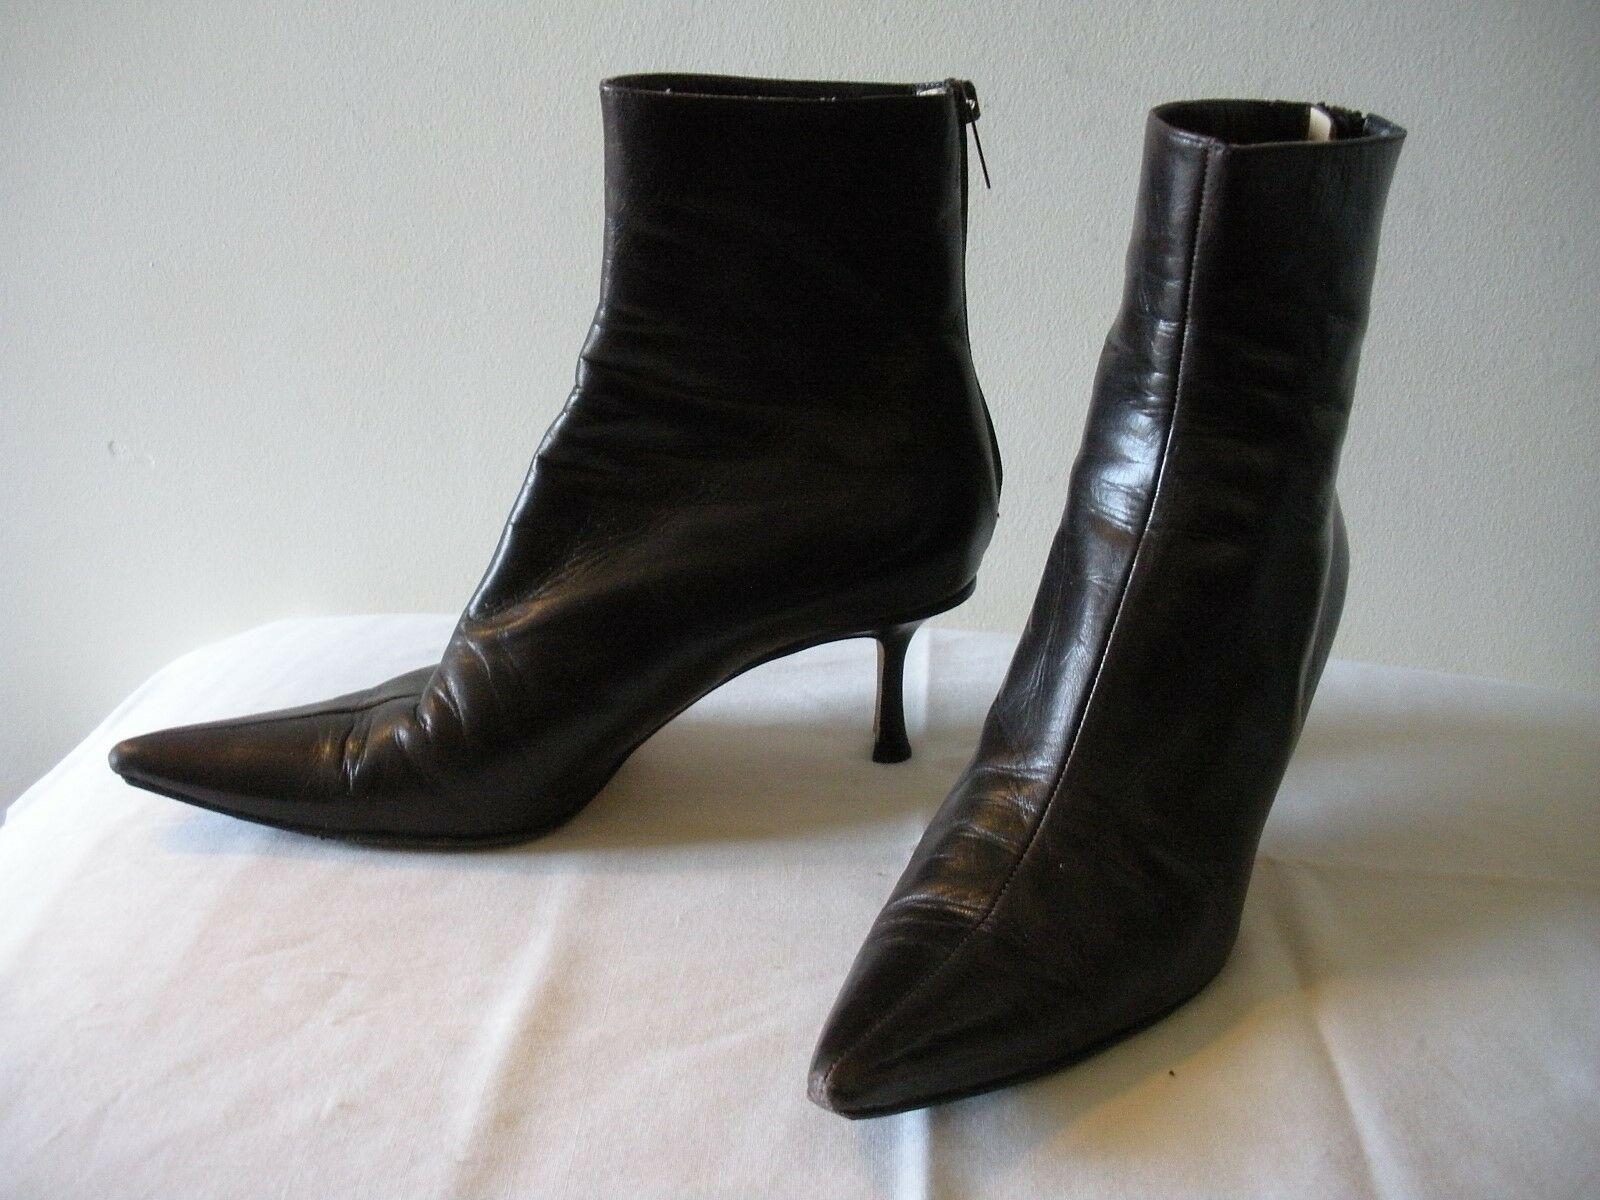 L-O-V-E~!!! 825 JIMMY CHOO Cocoa Brown Leather Boots ITALY  US 7.5M  IT 37.5.